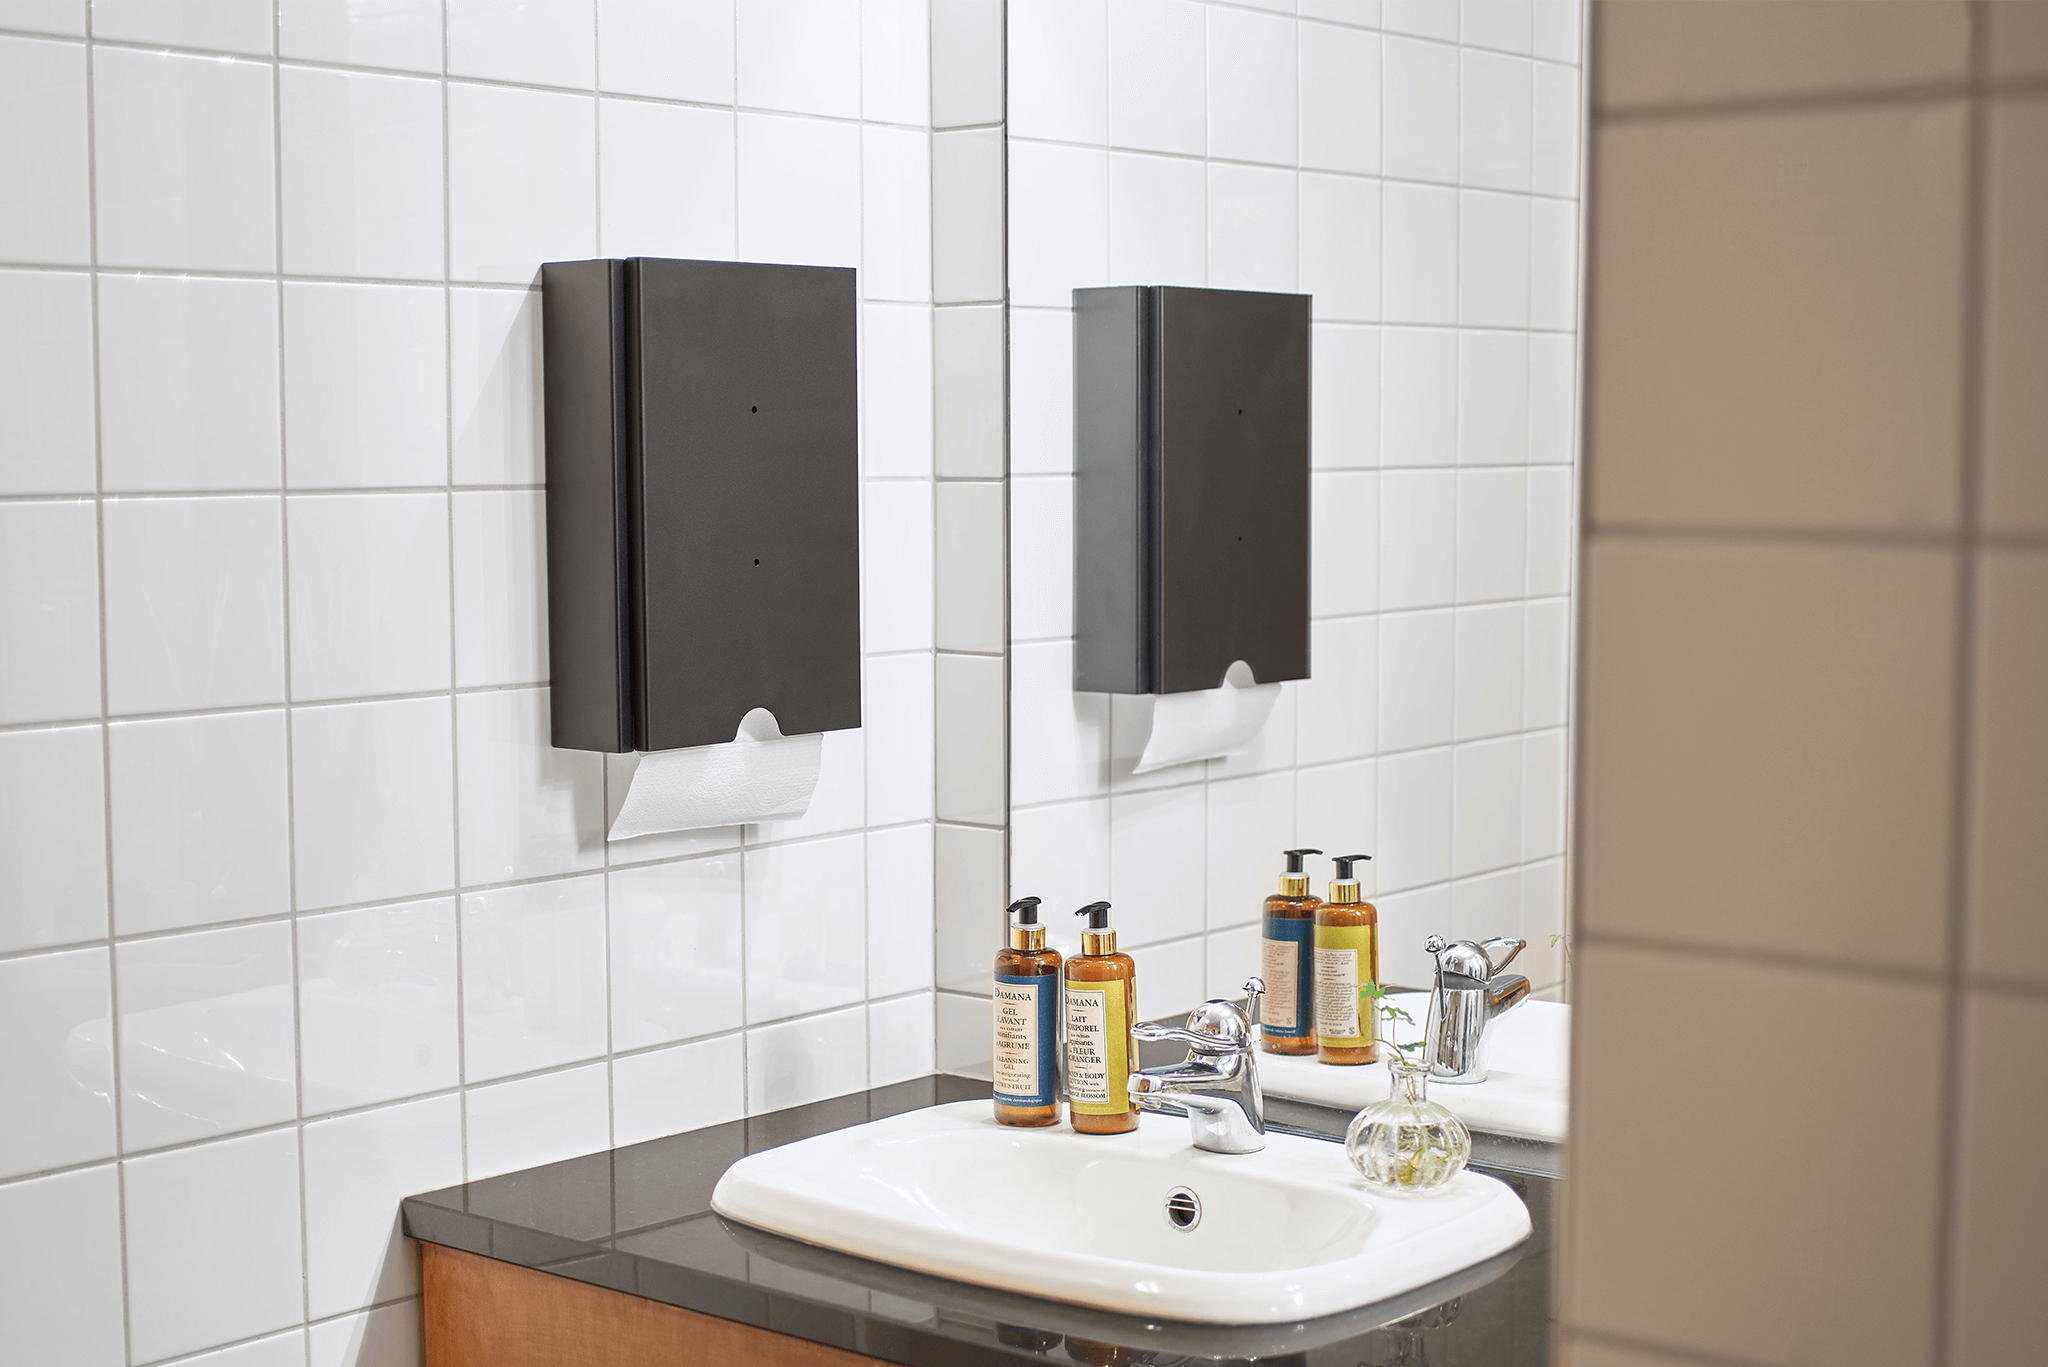 Hand Paper Towel Dispenser (ID.858)